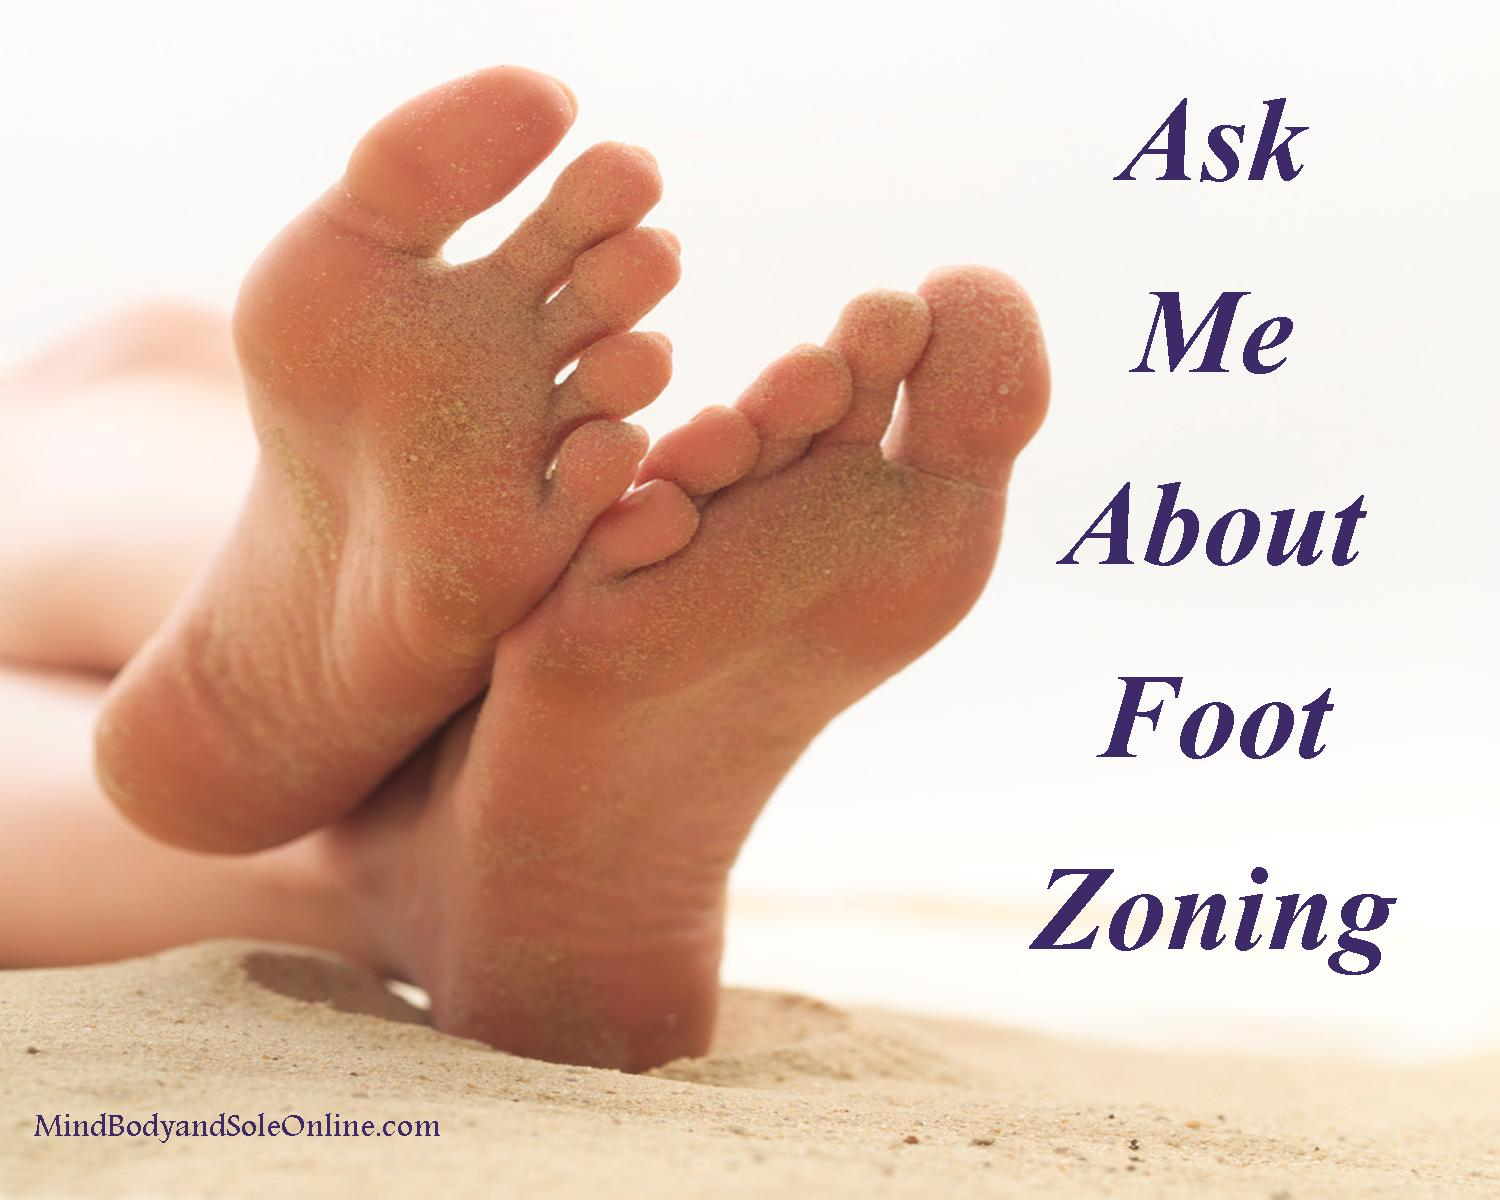 Foot Zoning Classes Start in 2 Weeks